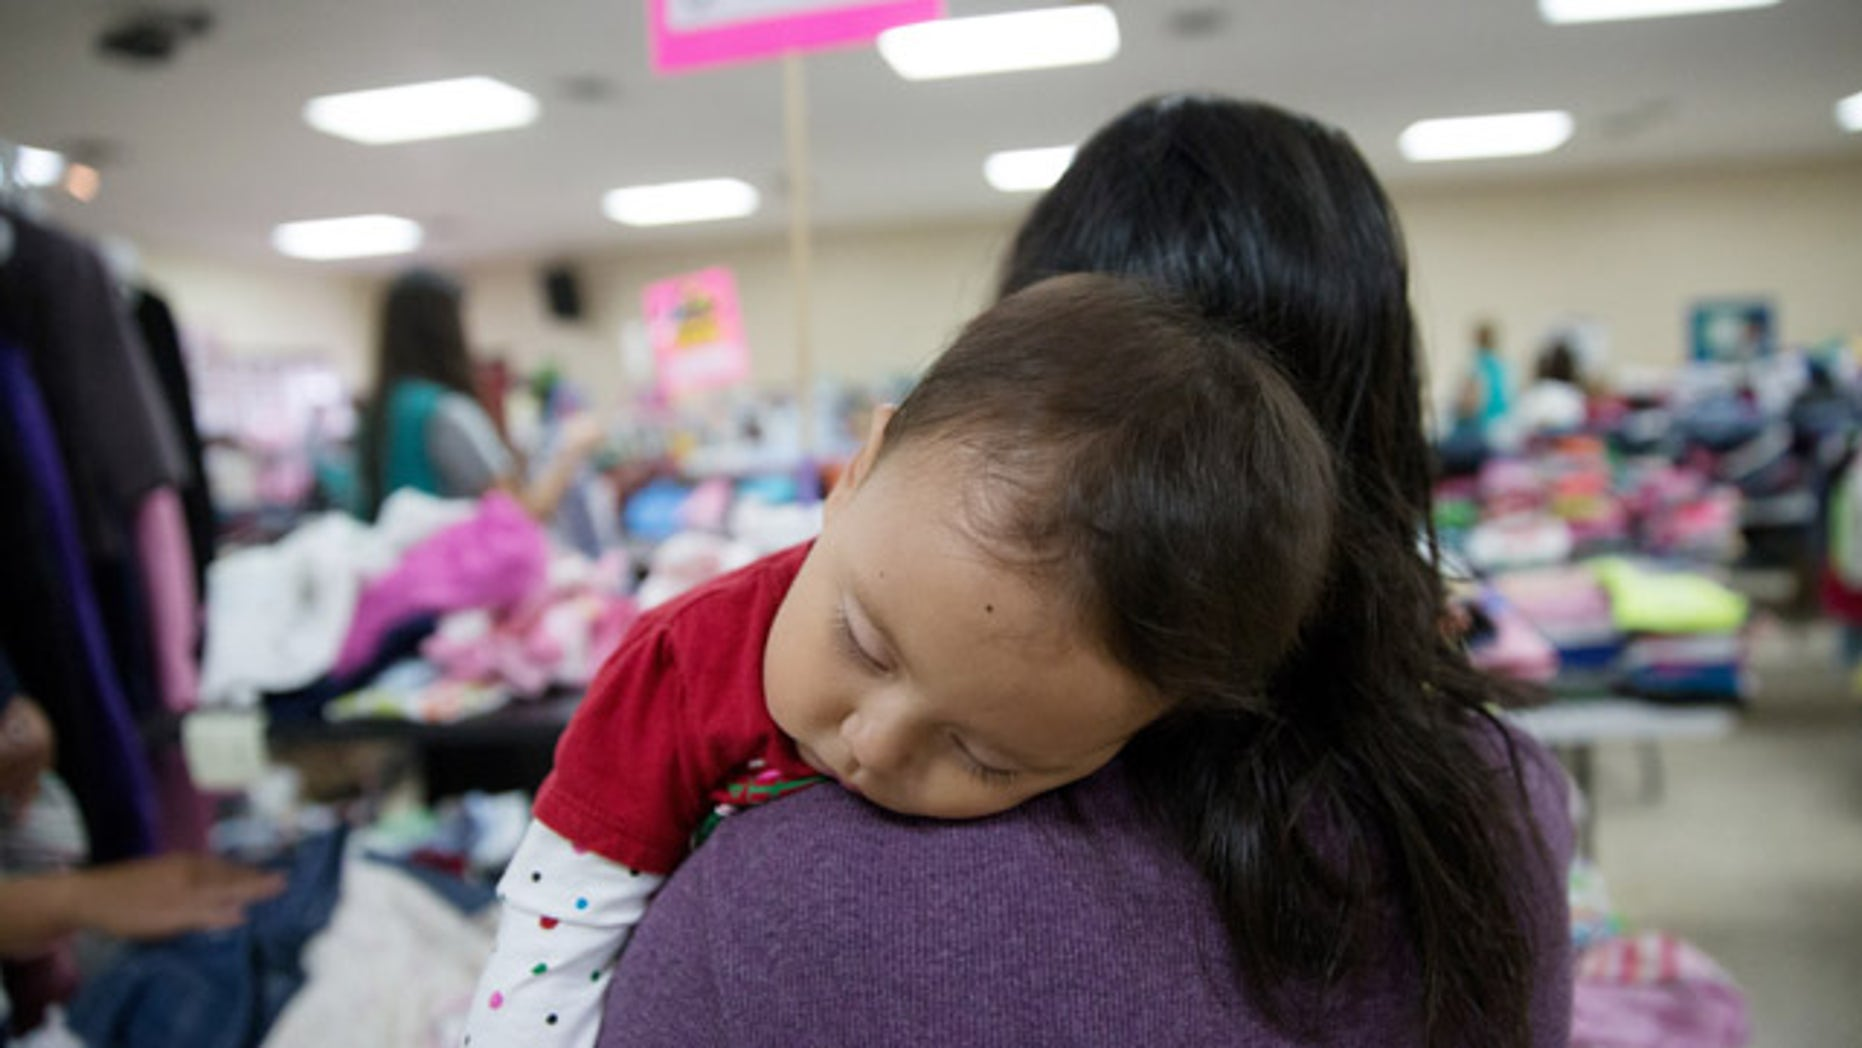 In this April 30, 2105 photo, Gladys Pina, 30, from Honduras holds her 8-month old baby girl at a respite center run by Catholic Charities in McAllen, Texas. She was among nearly two-dozen immigrant mothers who arrived at the center after being released by Border Patrol. Rather than getting locked up in a family detention facility, some families are released by Border Patrol with notices to appear in immigration court. (AP Photo/Seth Robbins)